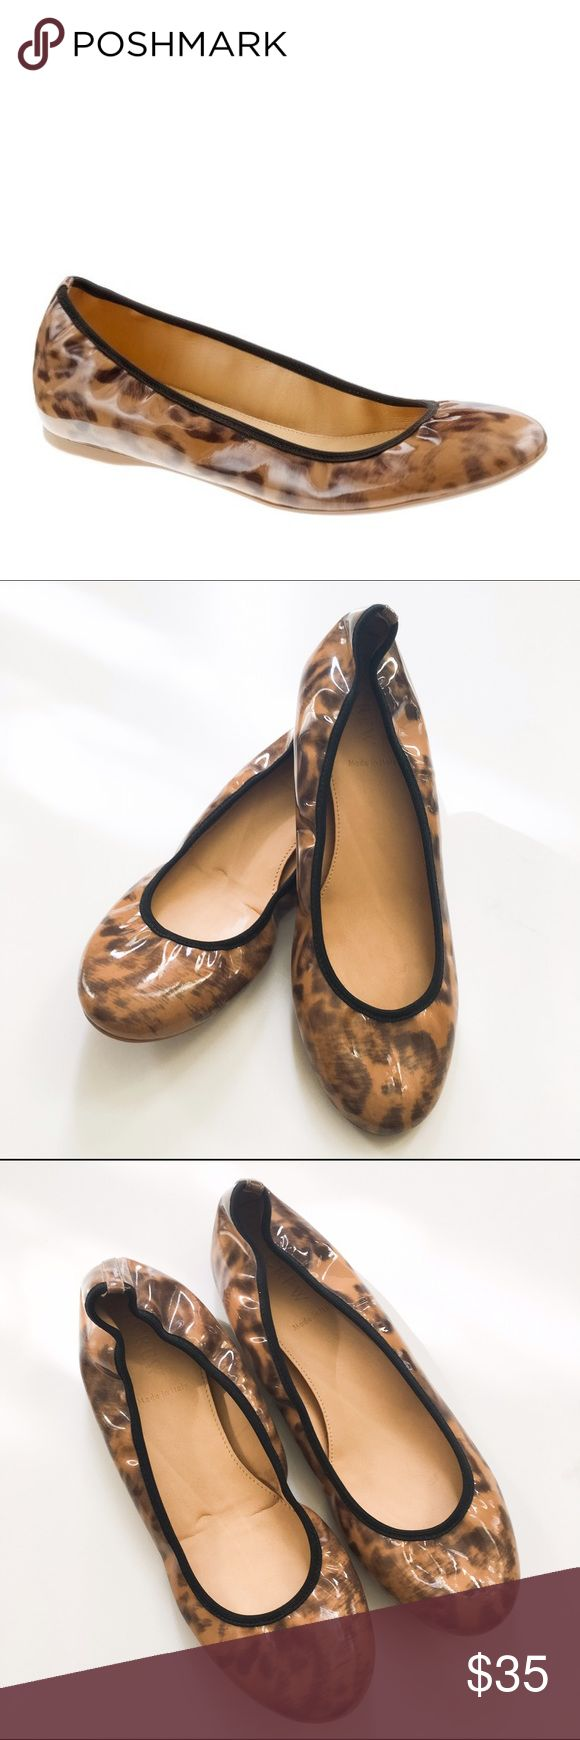 J Crew Lula Leopard Ballet Flats These are gently used J Crew Lula Leopard Ballet Flats. Worn once. Leather upper. In excellent condition. J. Crew Shoes Flats & Loafers